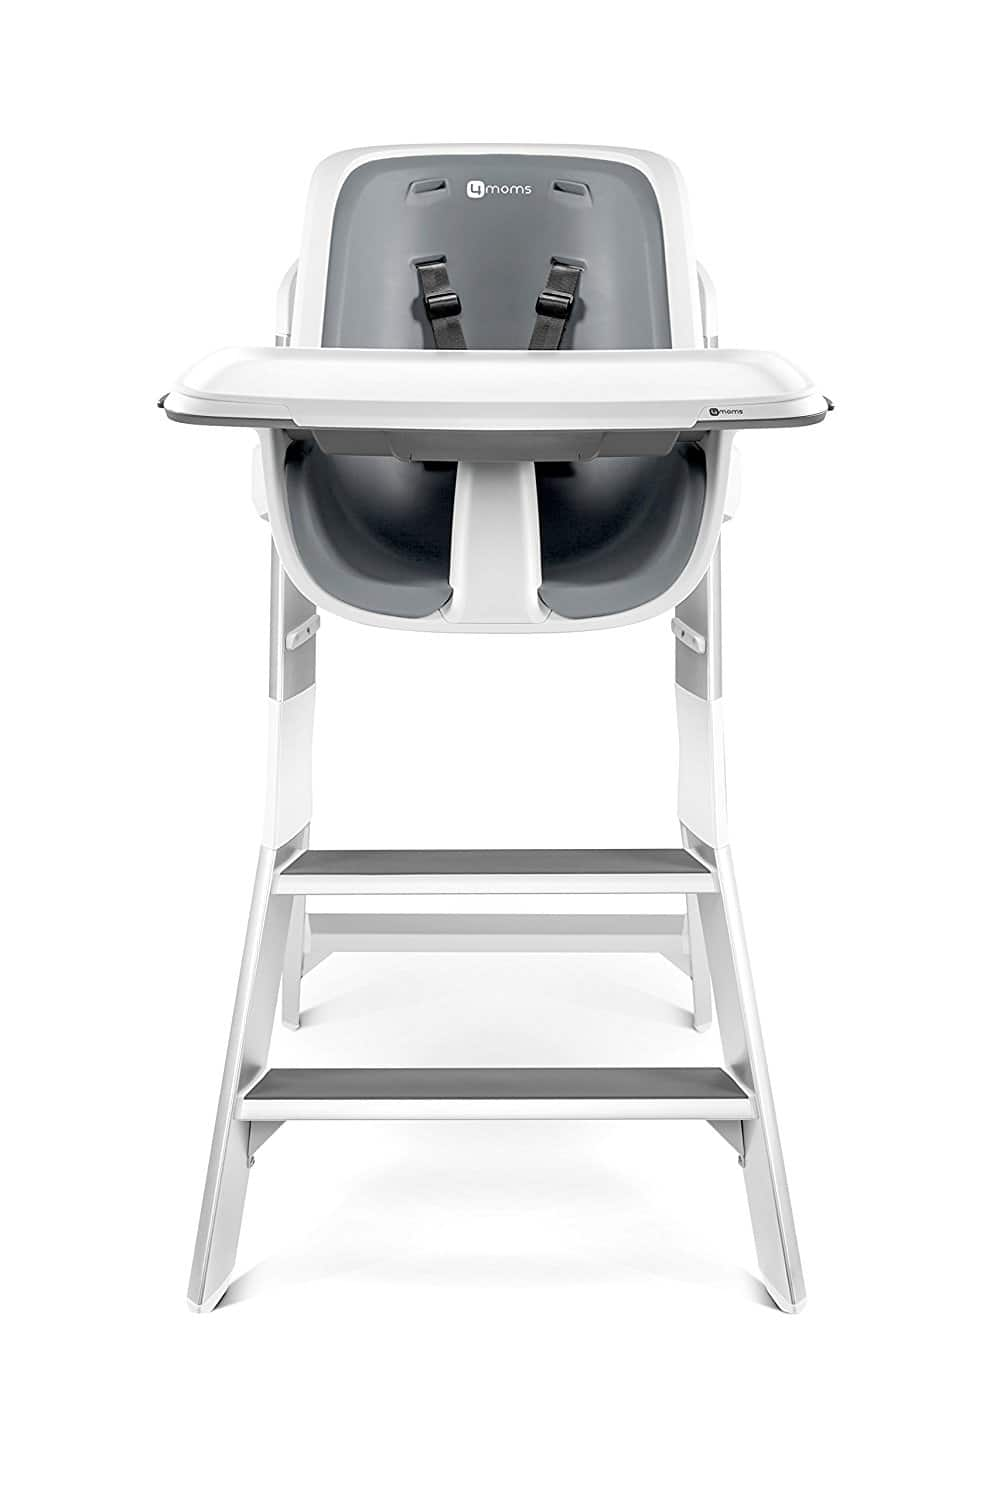 Easy Clean High Chair 4moms High Chair Easy To Clean With Magnetic One Handed Tray